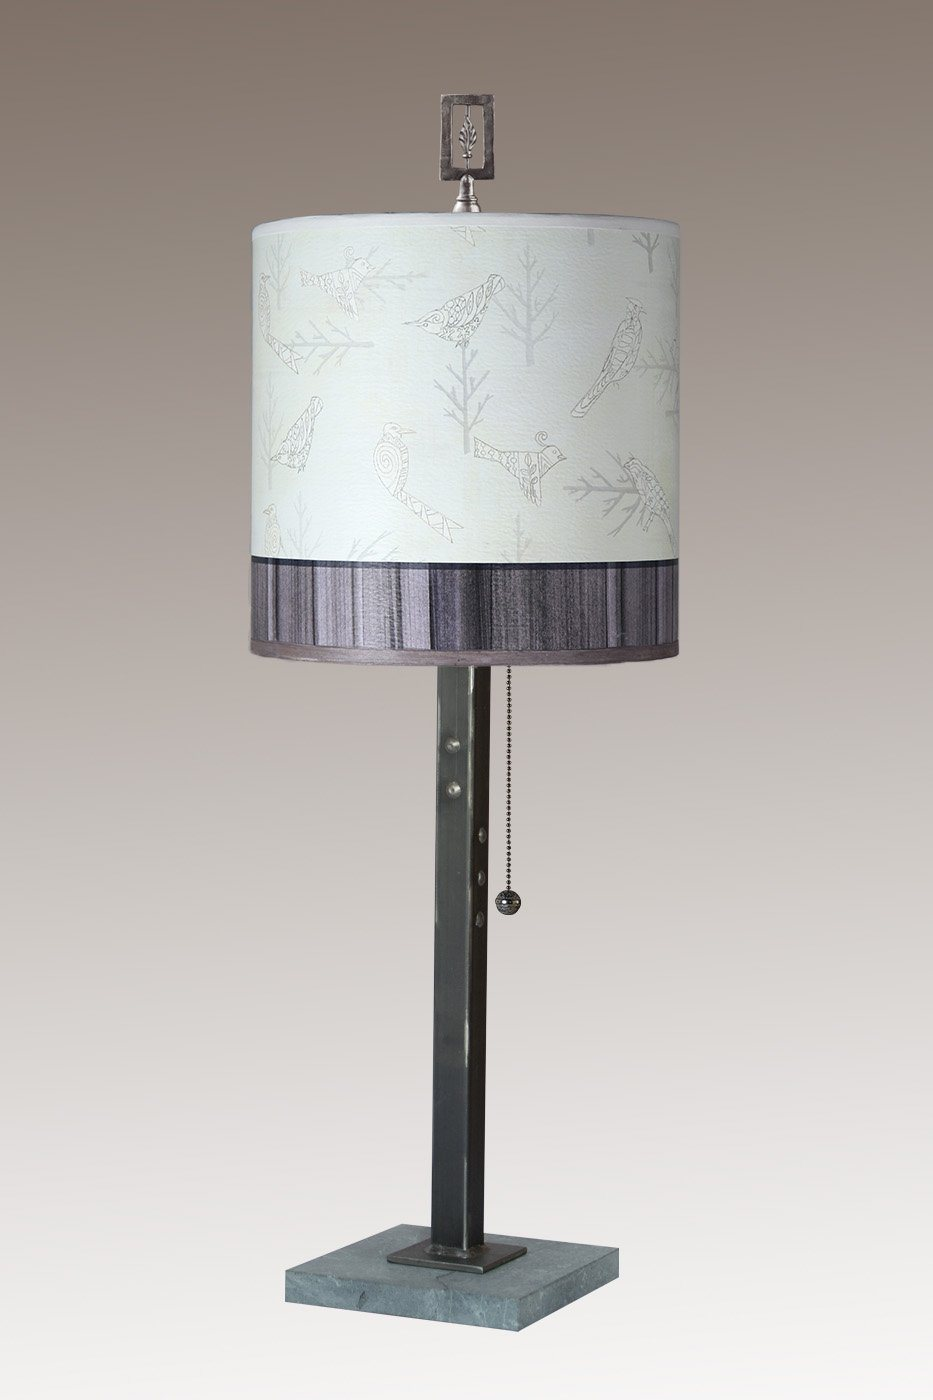 Steel Table Lamp on Marble with Medium Drum Shade in Perch